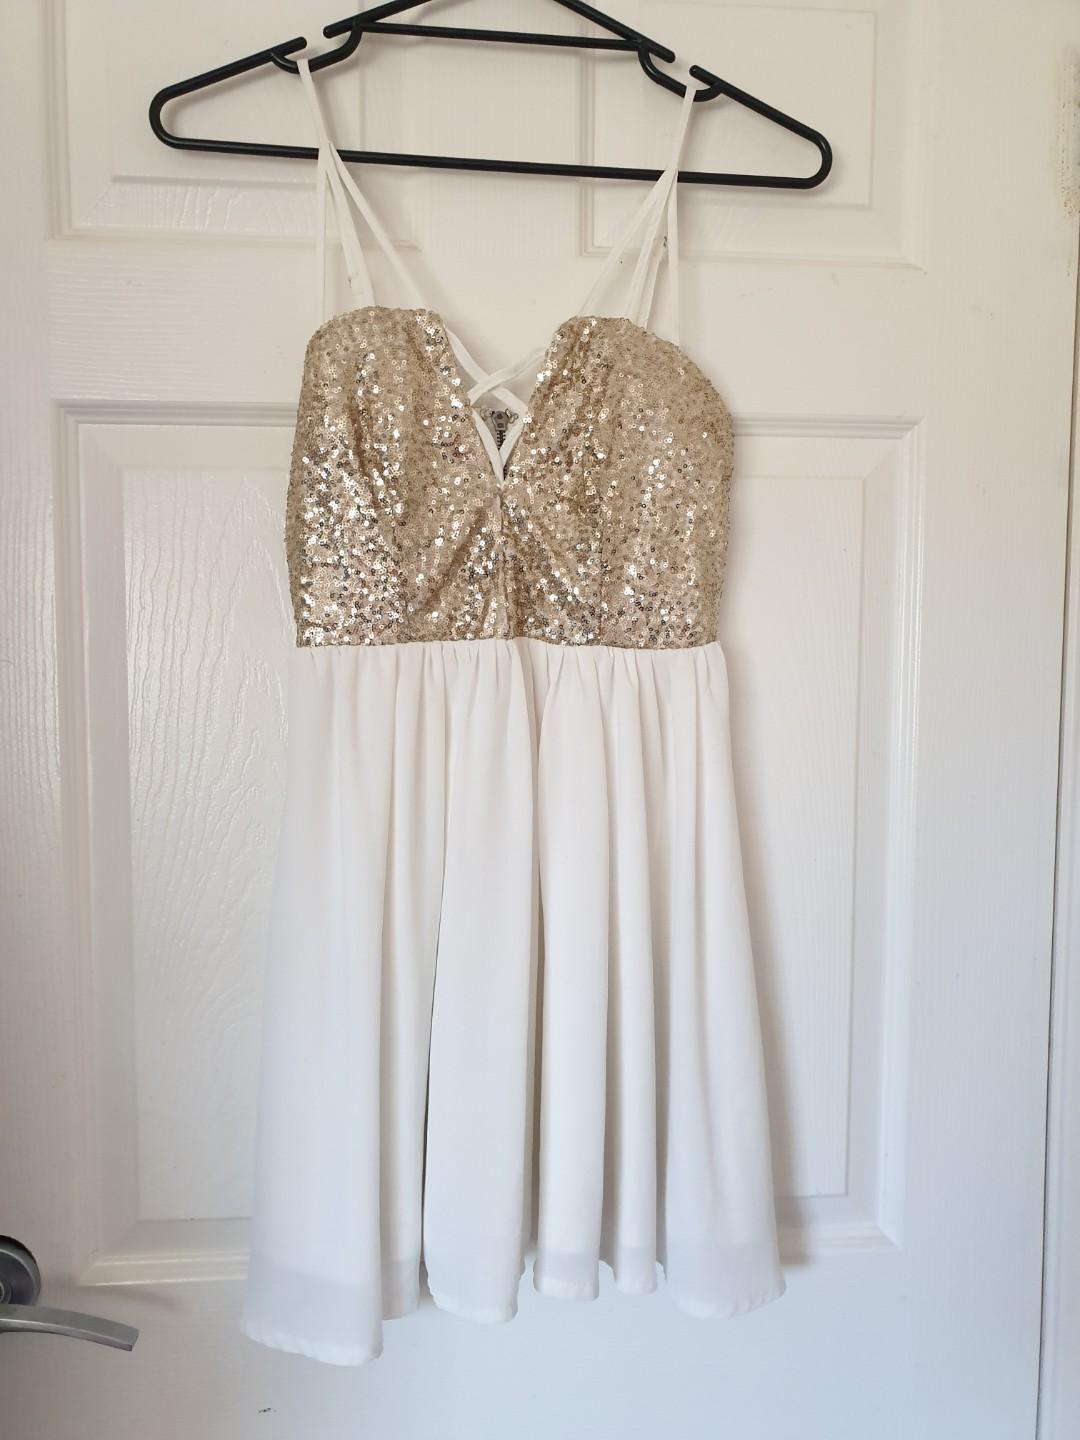 Gorgeous Gold Sequined Dress with Criss-cross Details